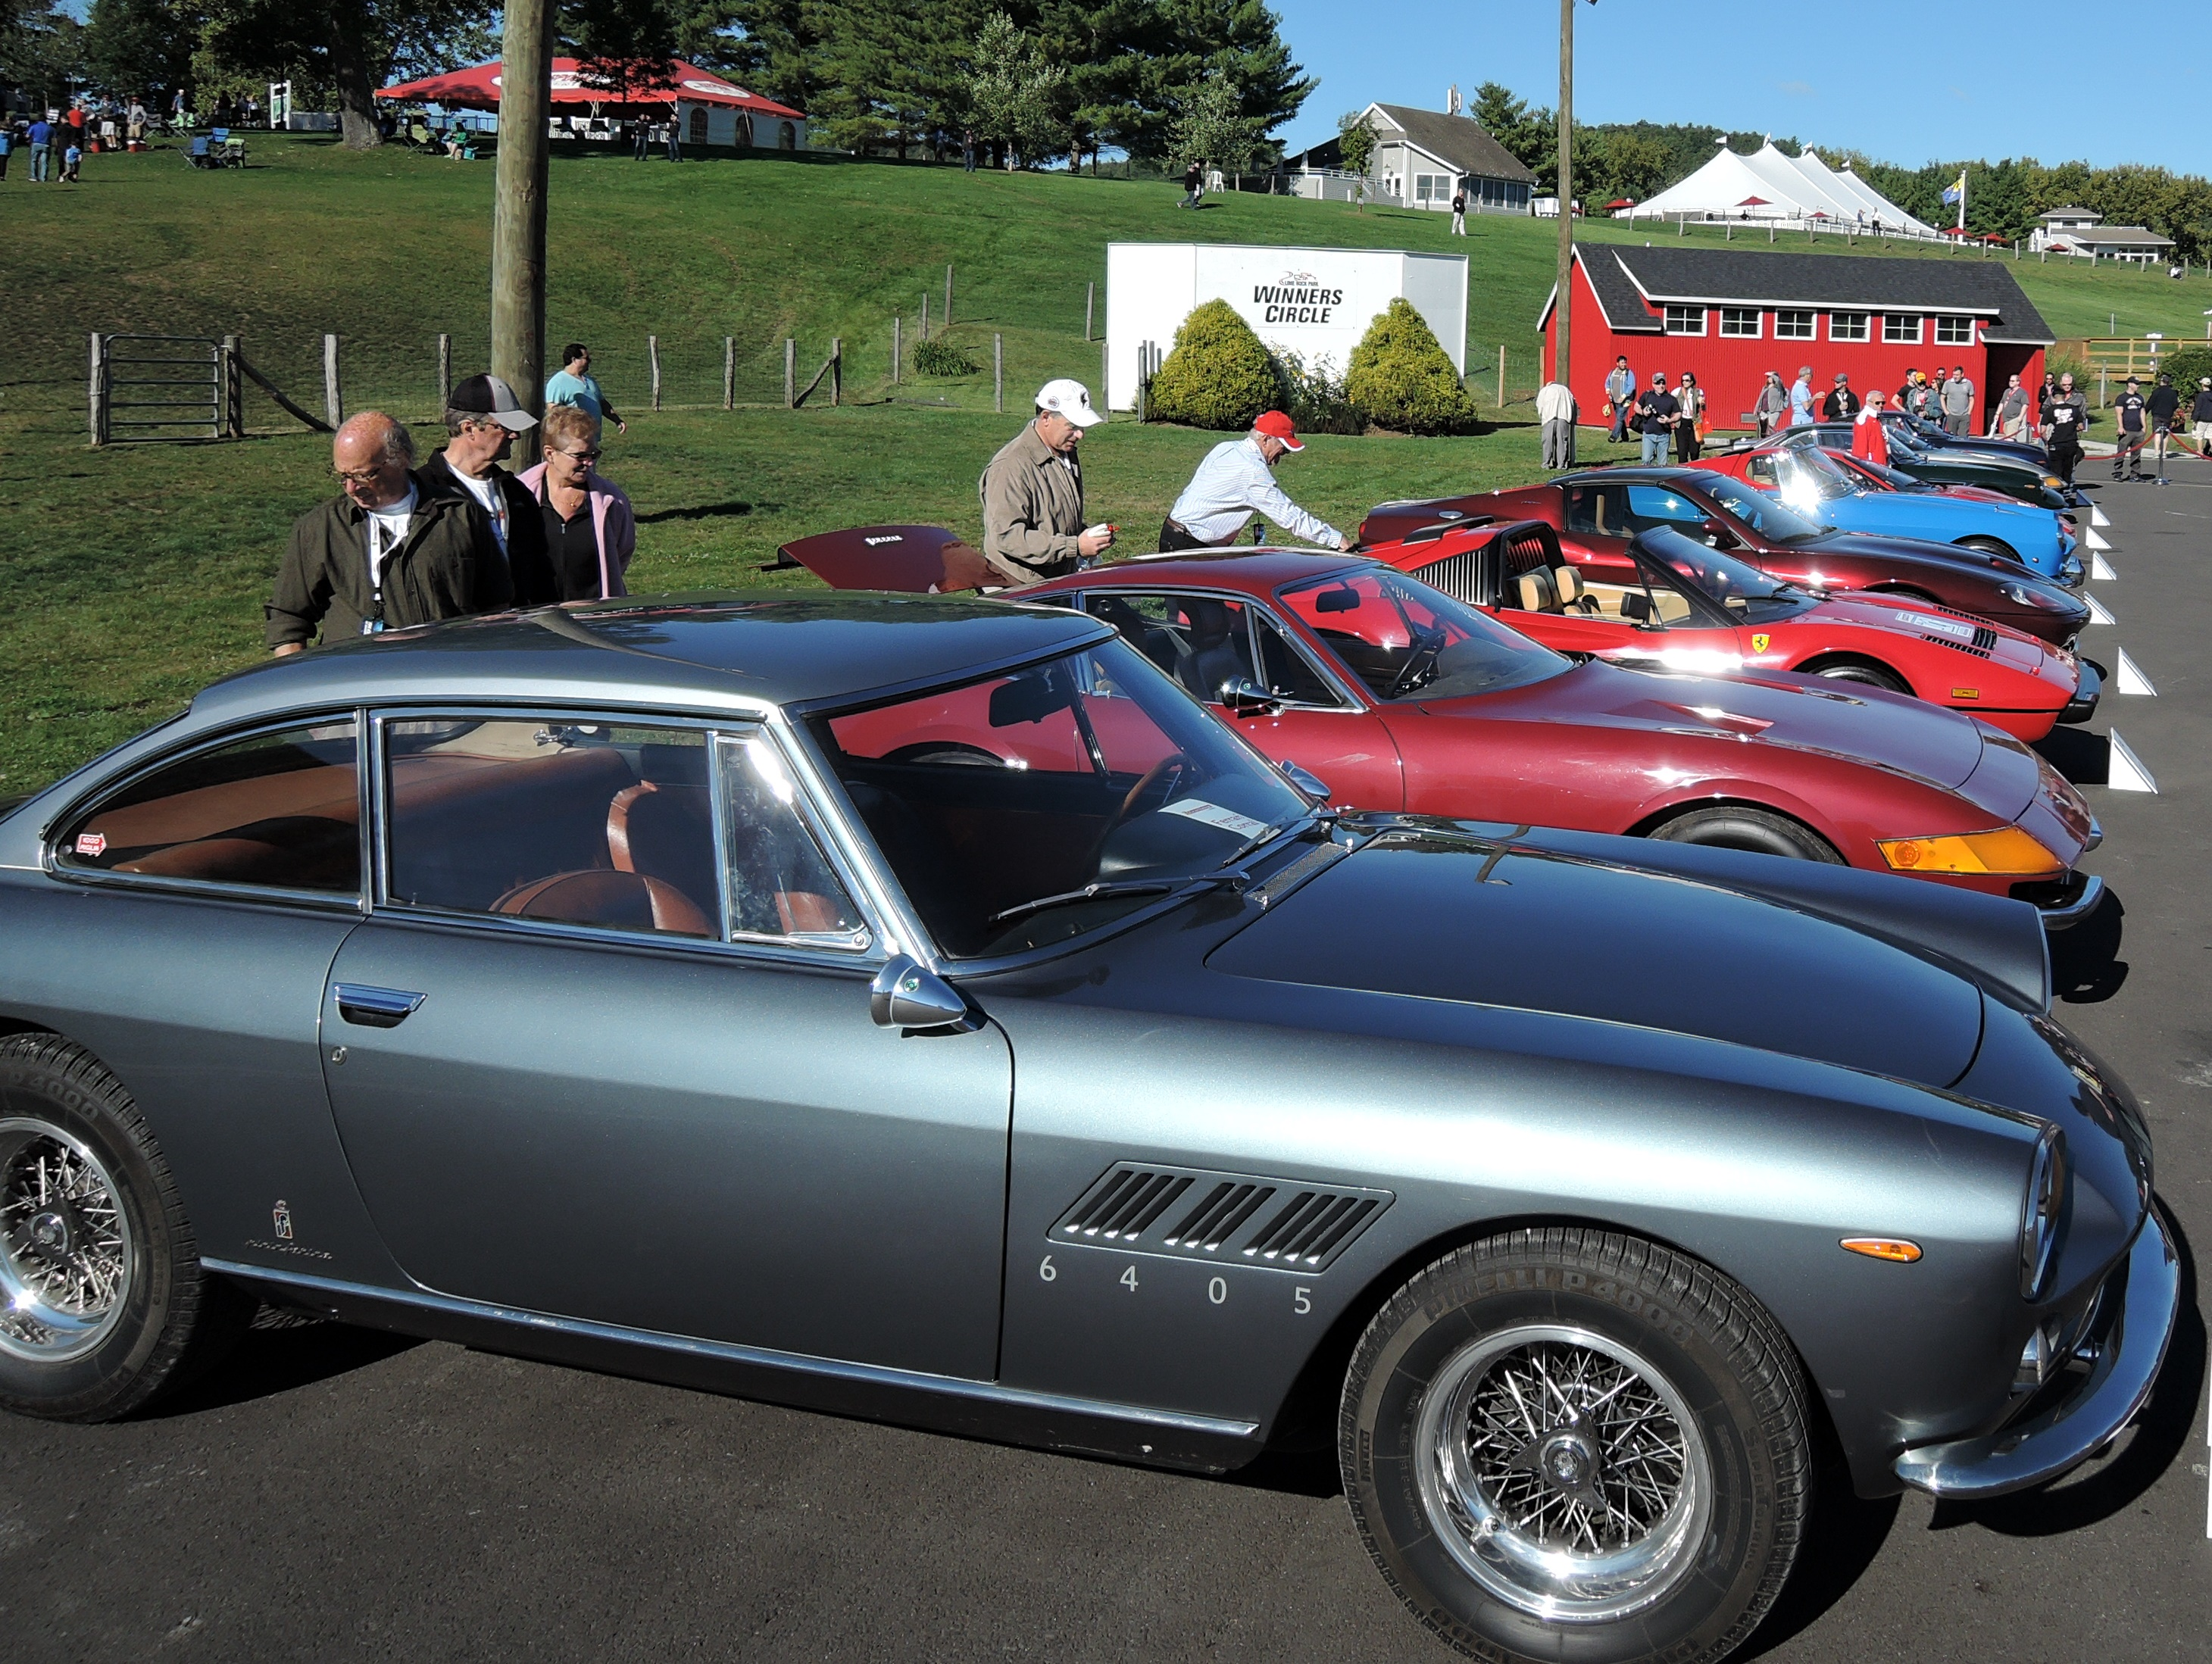 Ferrari Vintage Corral at Ferrari Challenge Series at LRP